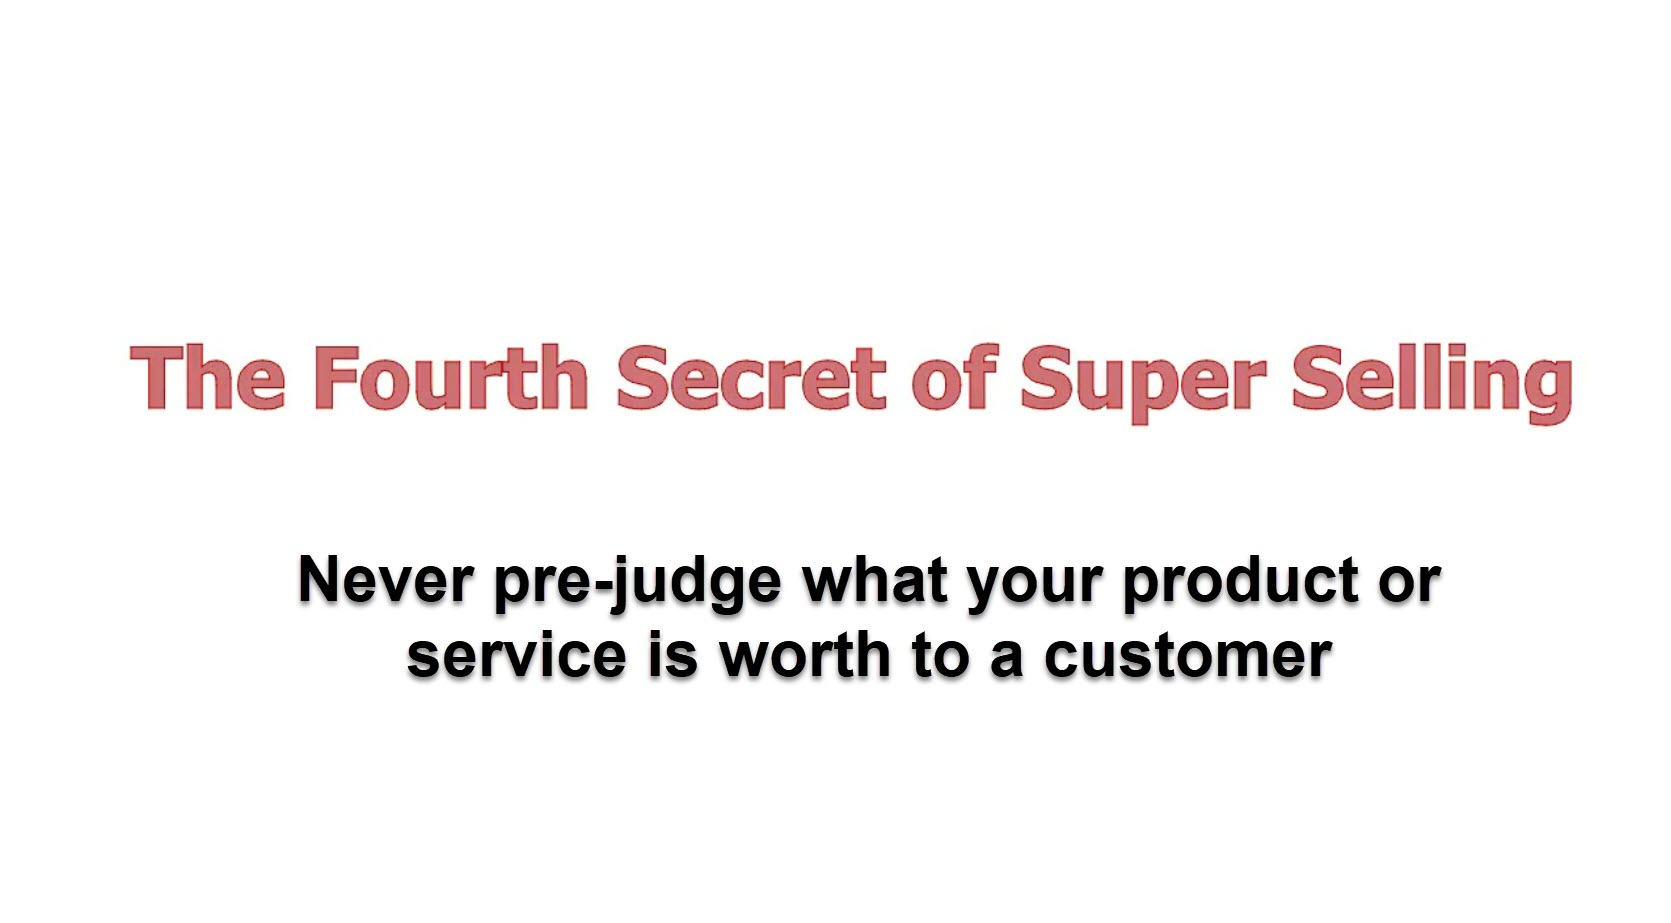 Never pre-judge what your product or service is worth to a customer